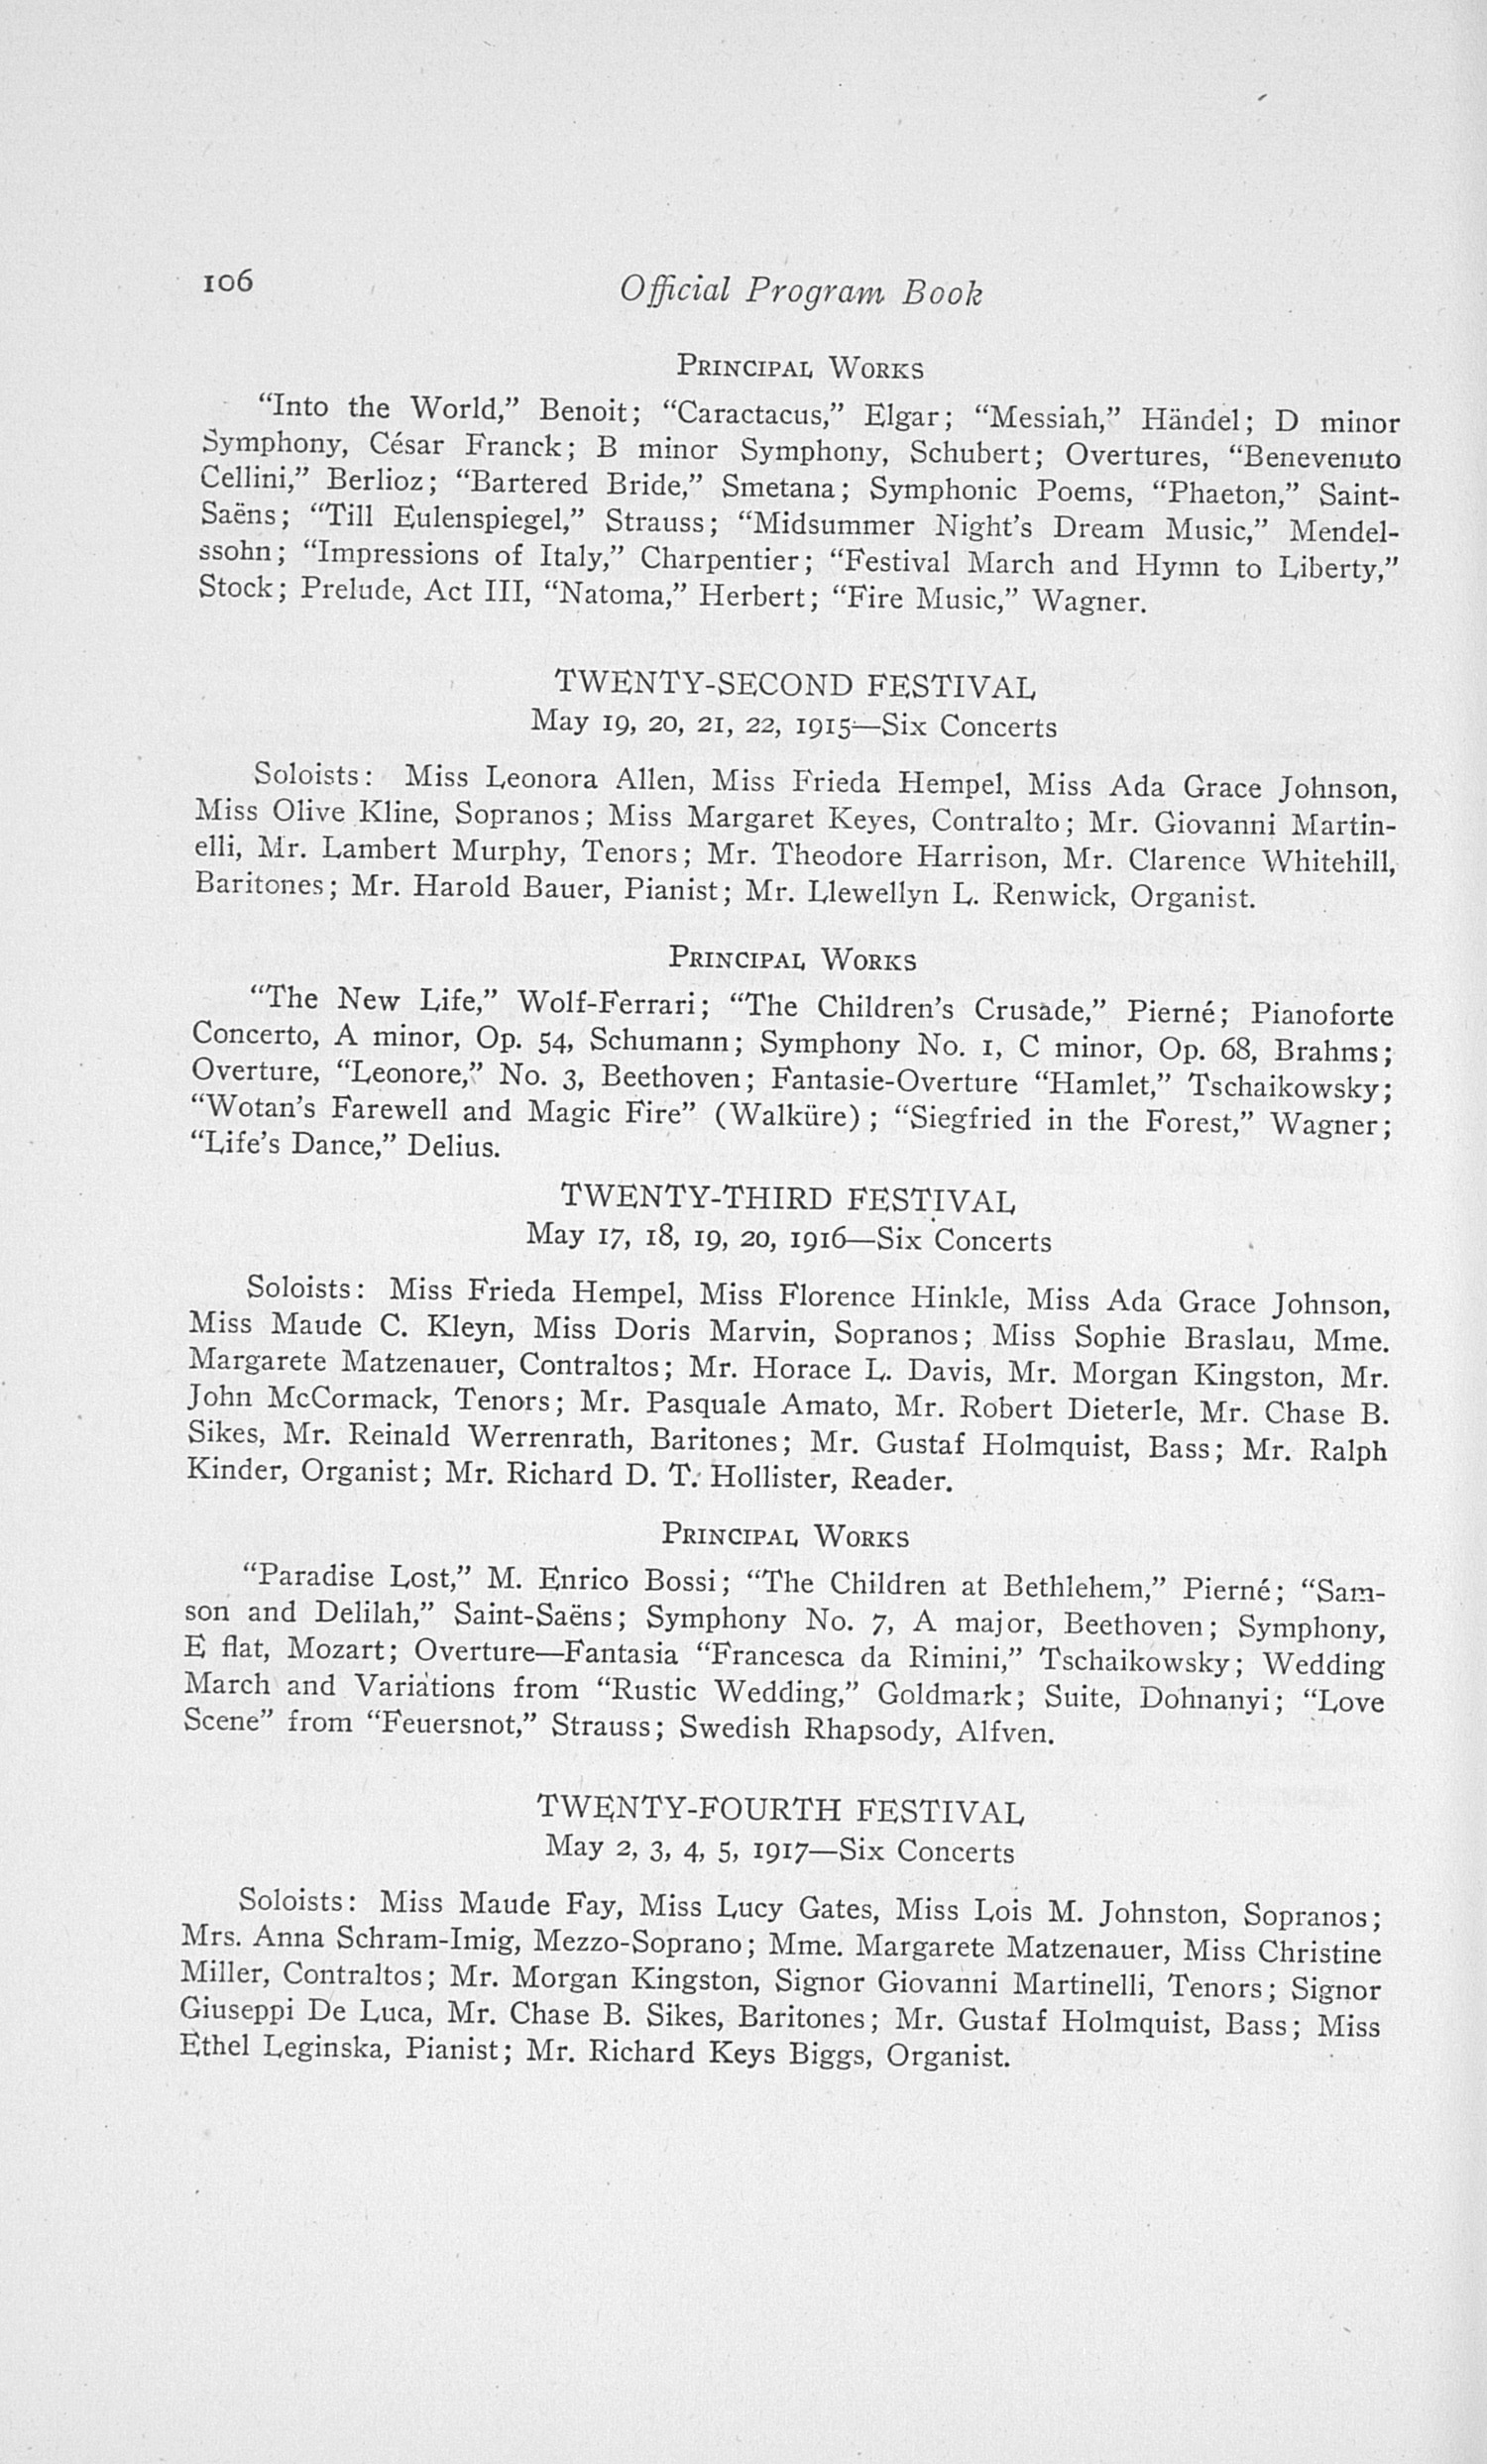 UMS Concert Program, May 18, 19, 20, 21 1921: Twenty-eighth Annual May Festival Of The University Of Michigan -- Albert A. Stanley image